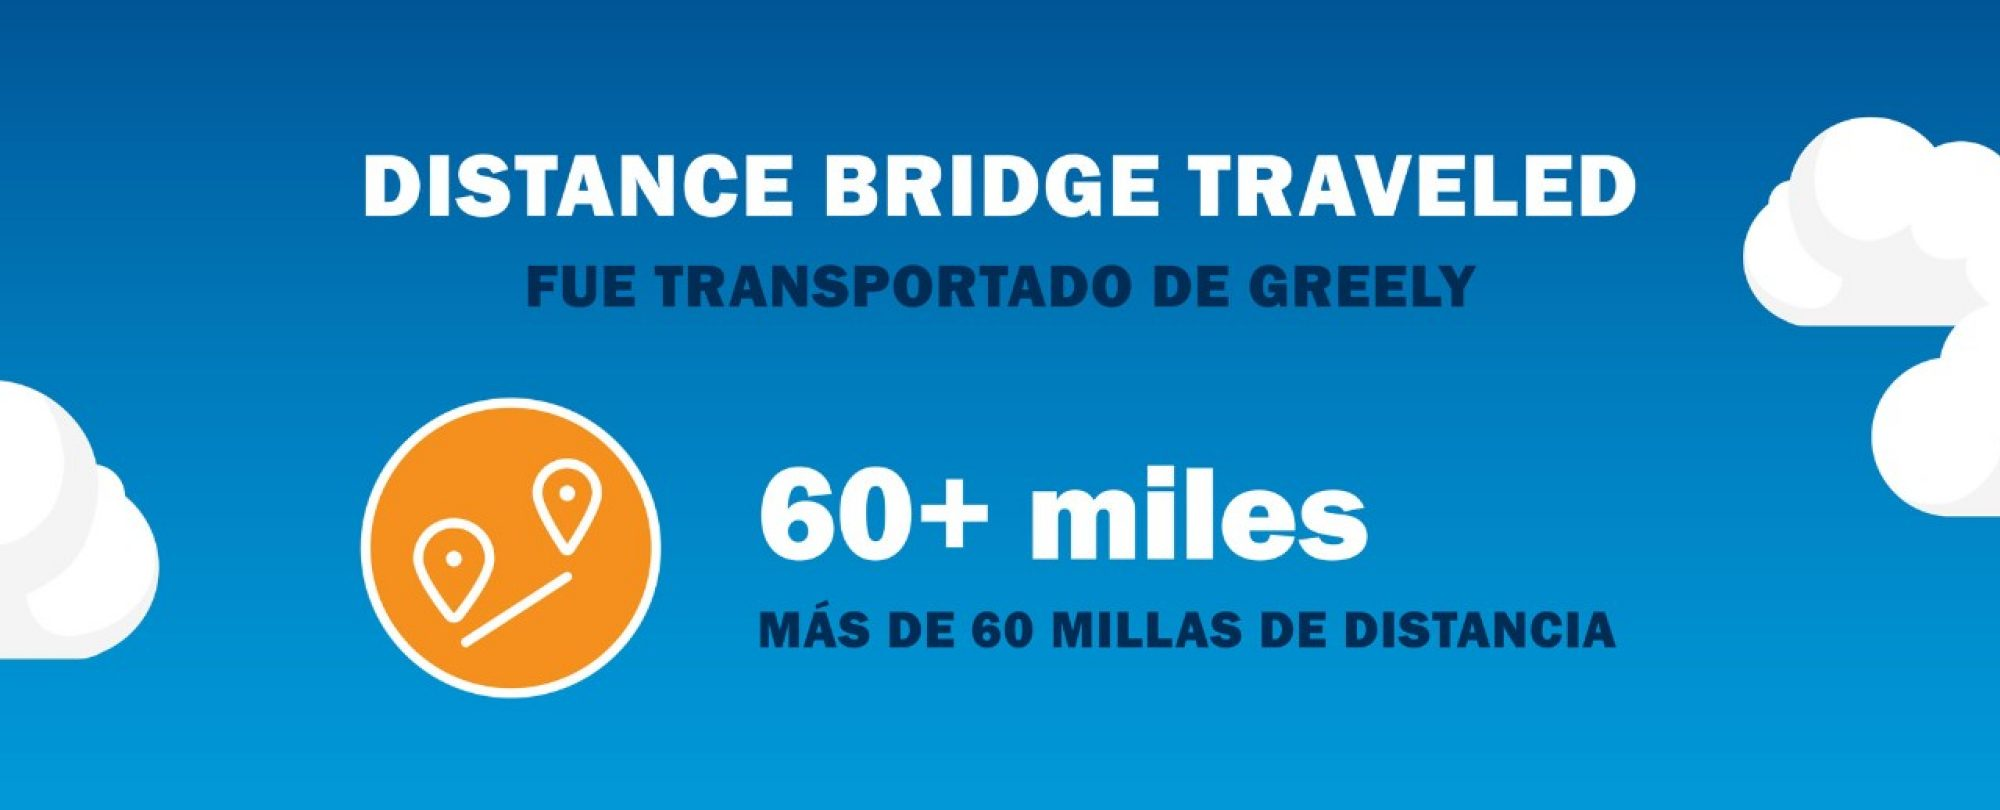 Distance bridge traveled: 60 plus miles